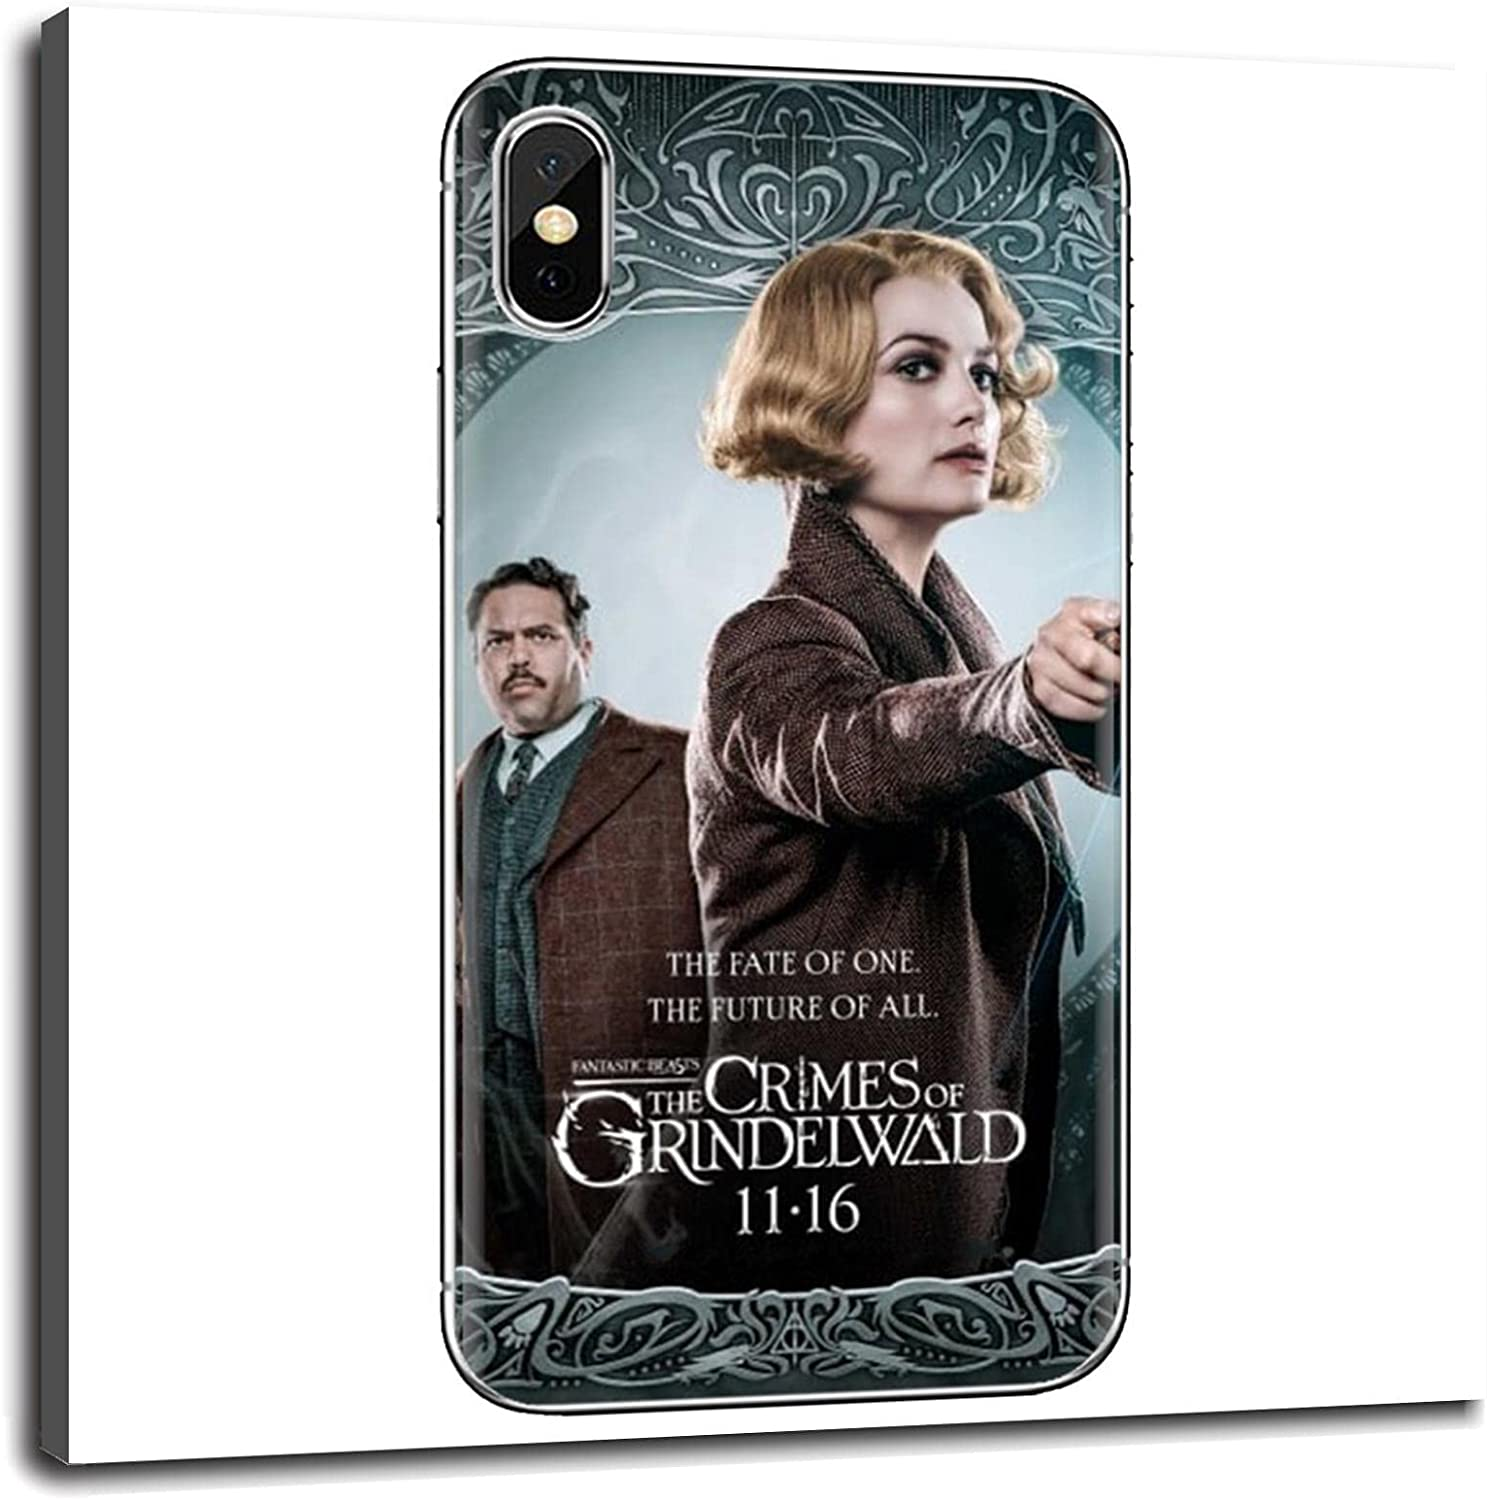 Classic Max 84% OFF Fantastic Beasts The Crimes Of Movie Art Grindelwald Canvas Wall